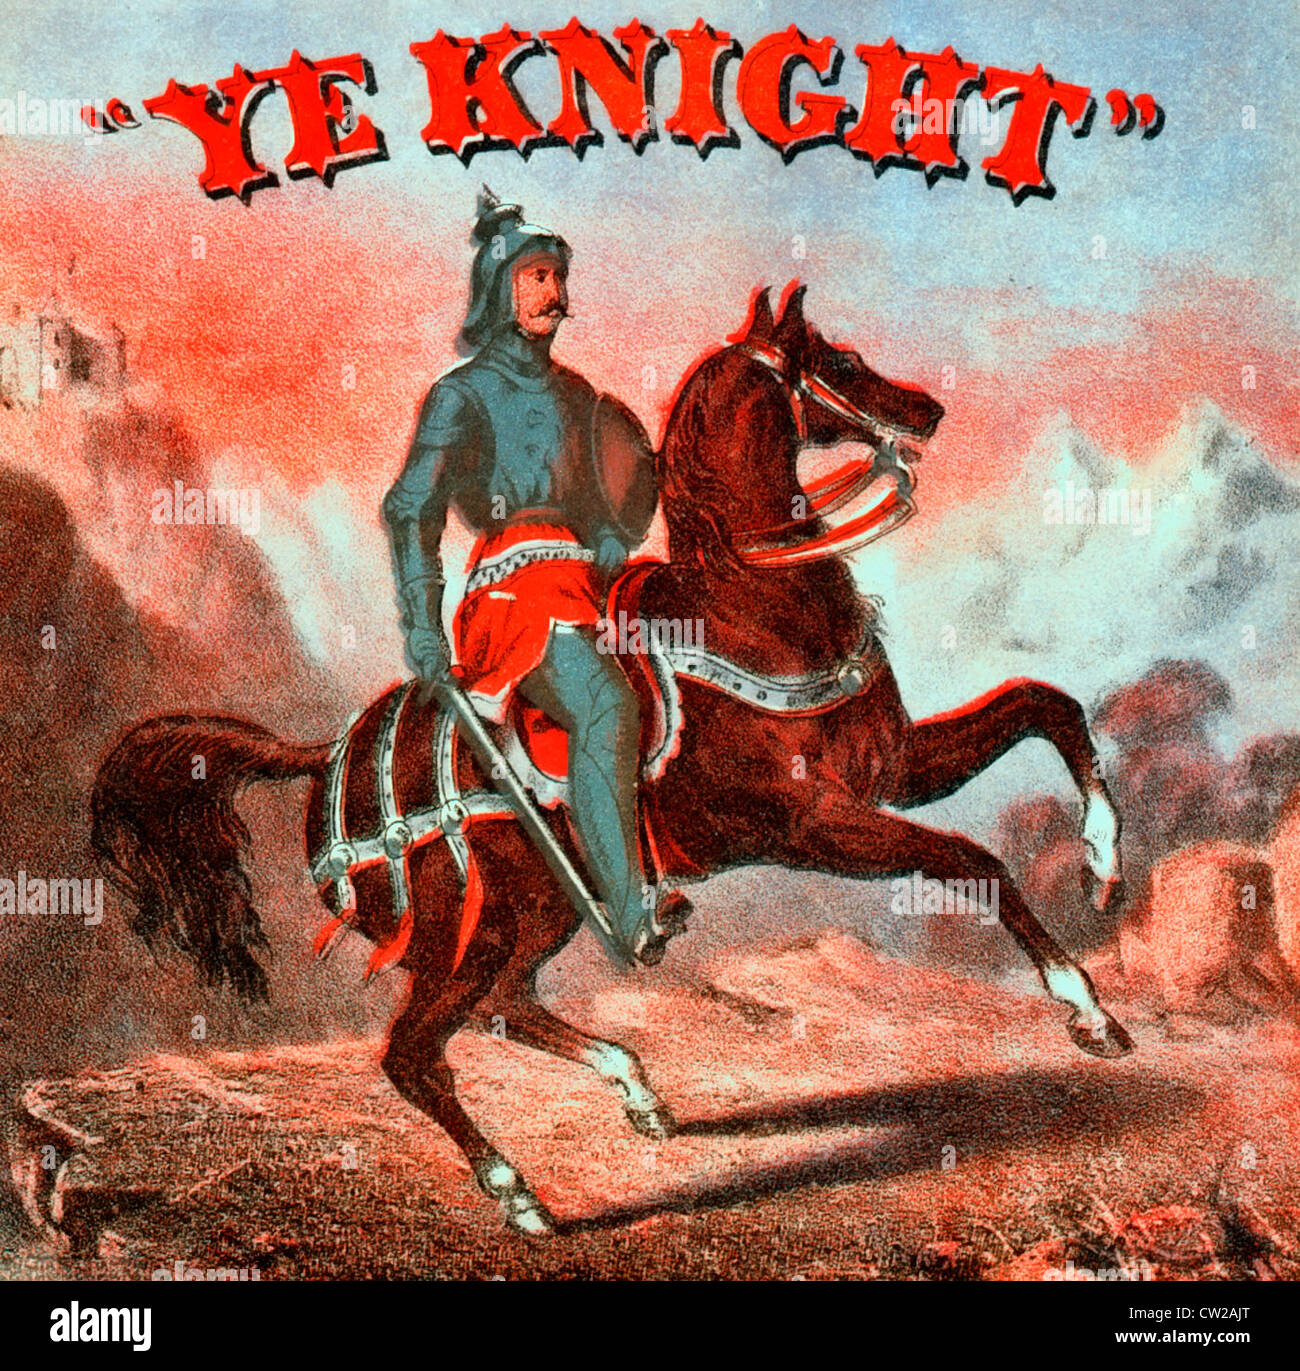 Ye Knight - Tobacco label showing a mounted knight in armor; in the background mountains and a castle. - Stock Image